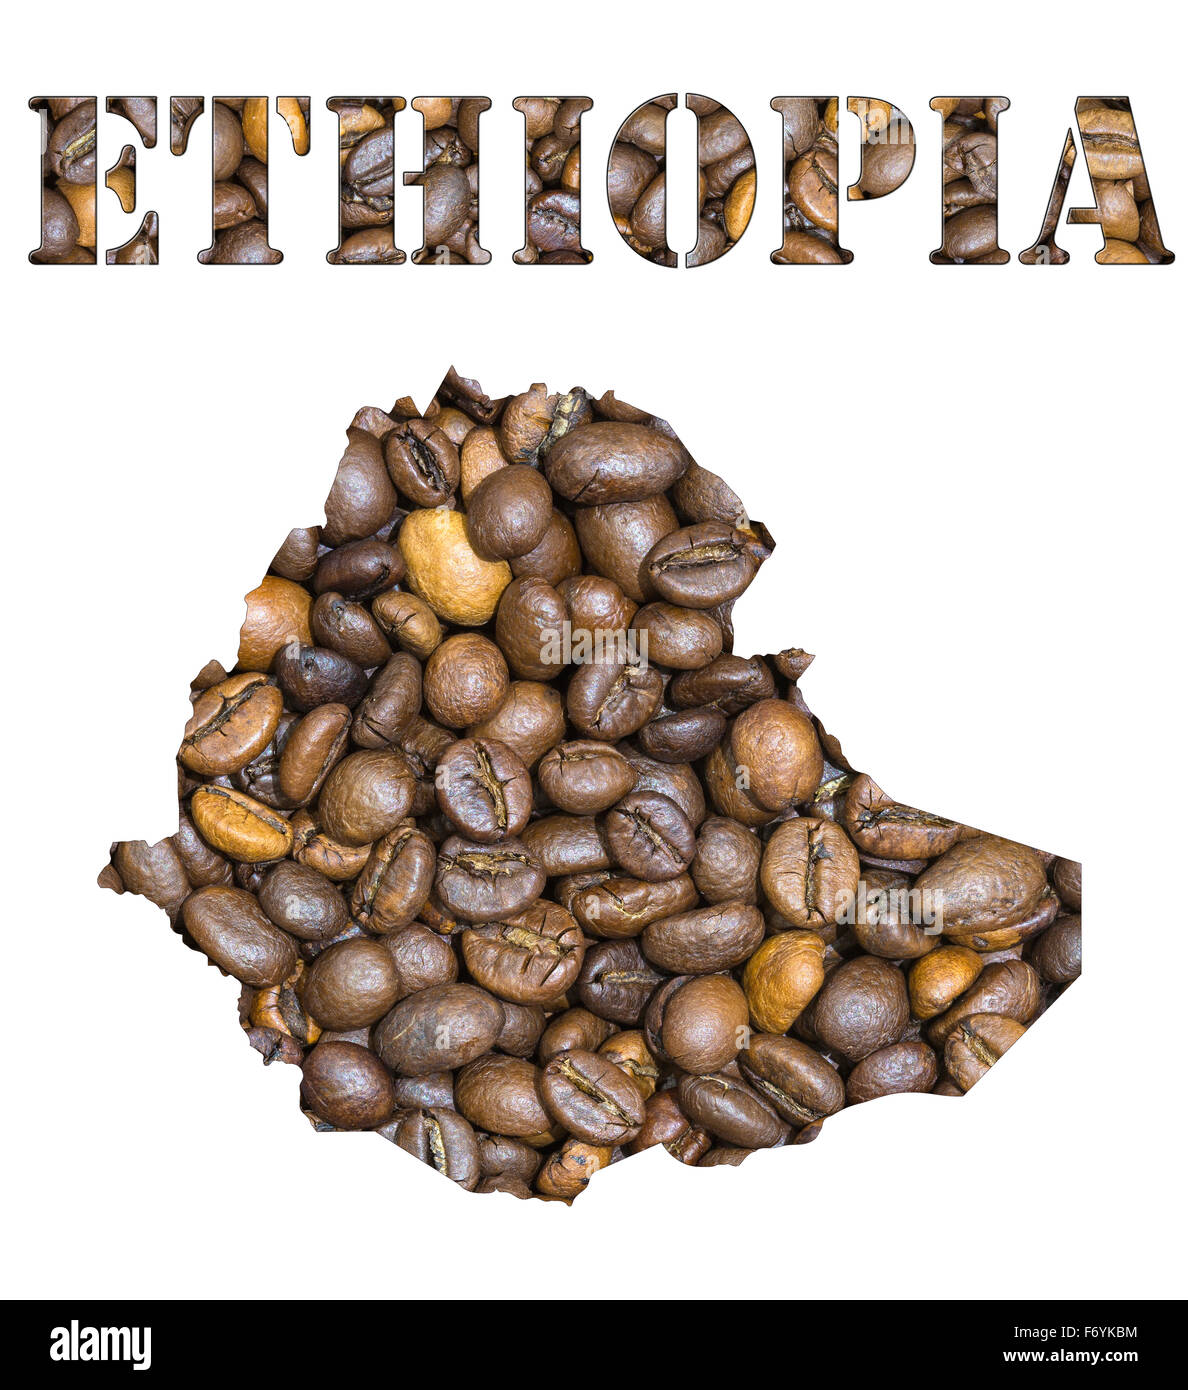 Roasted brown coffee beans background with the shape of the word Ethiopia and the country geographical map outline. - Stock Image